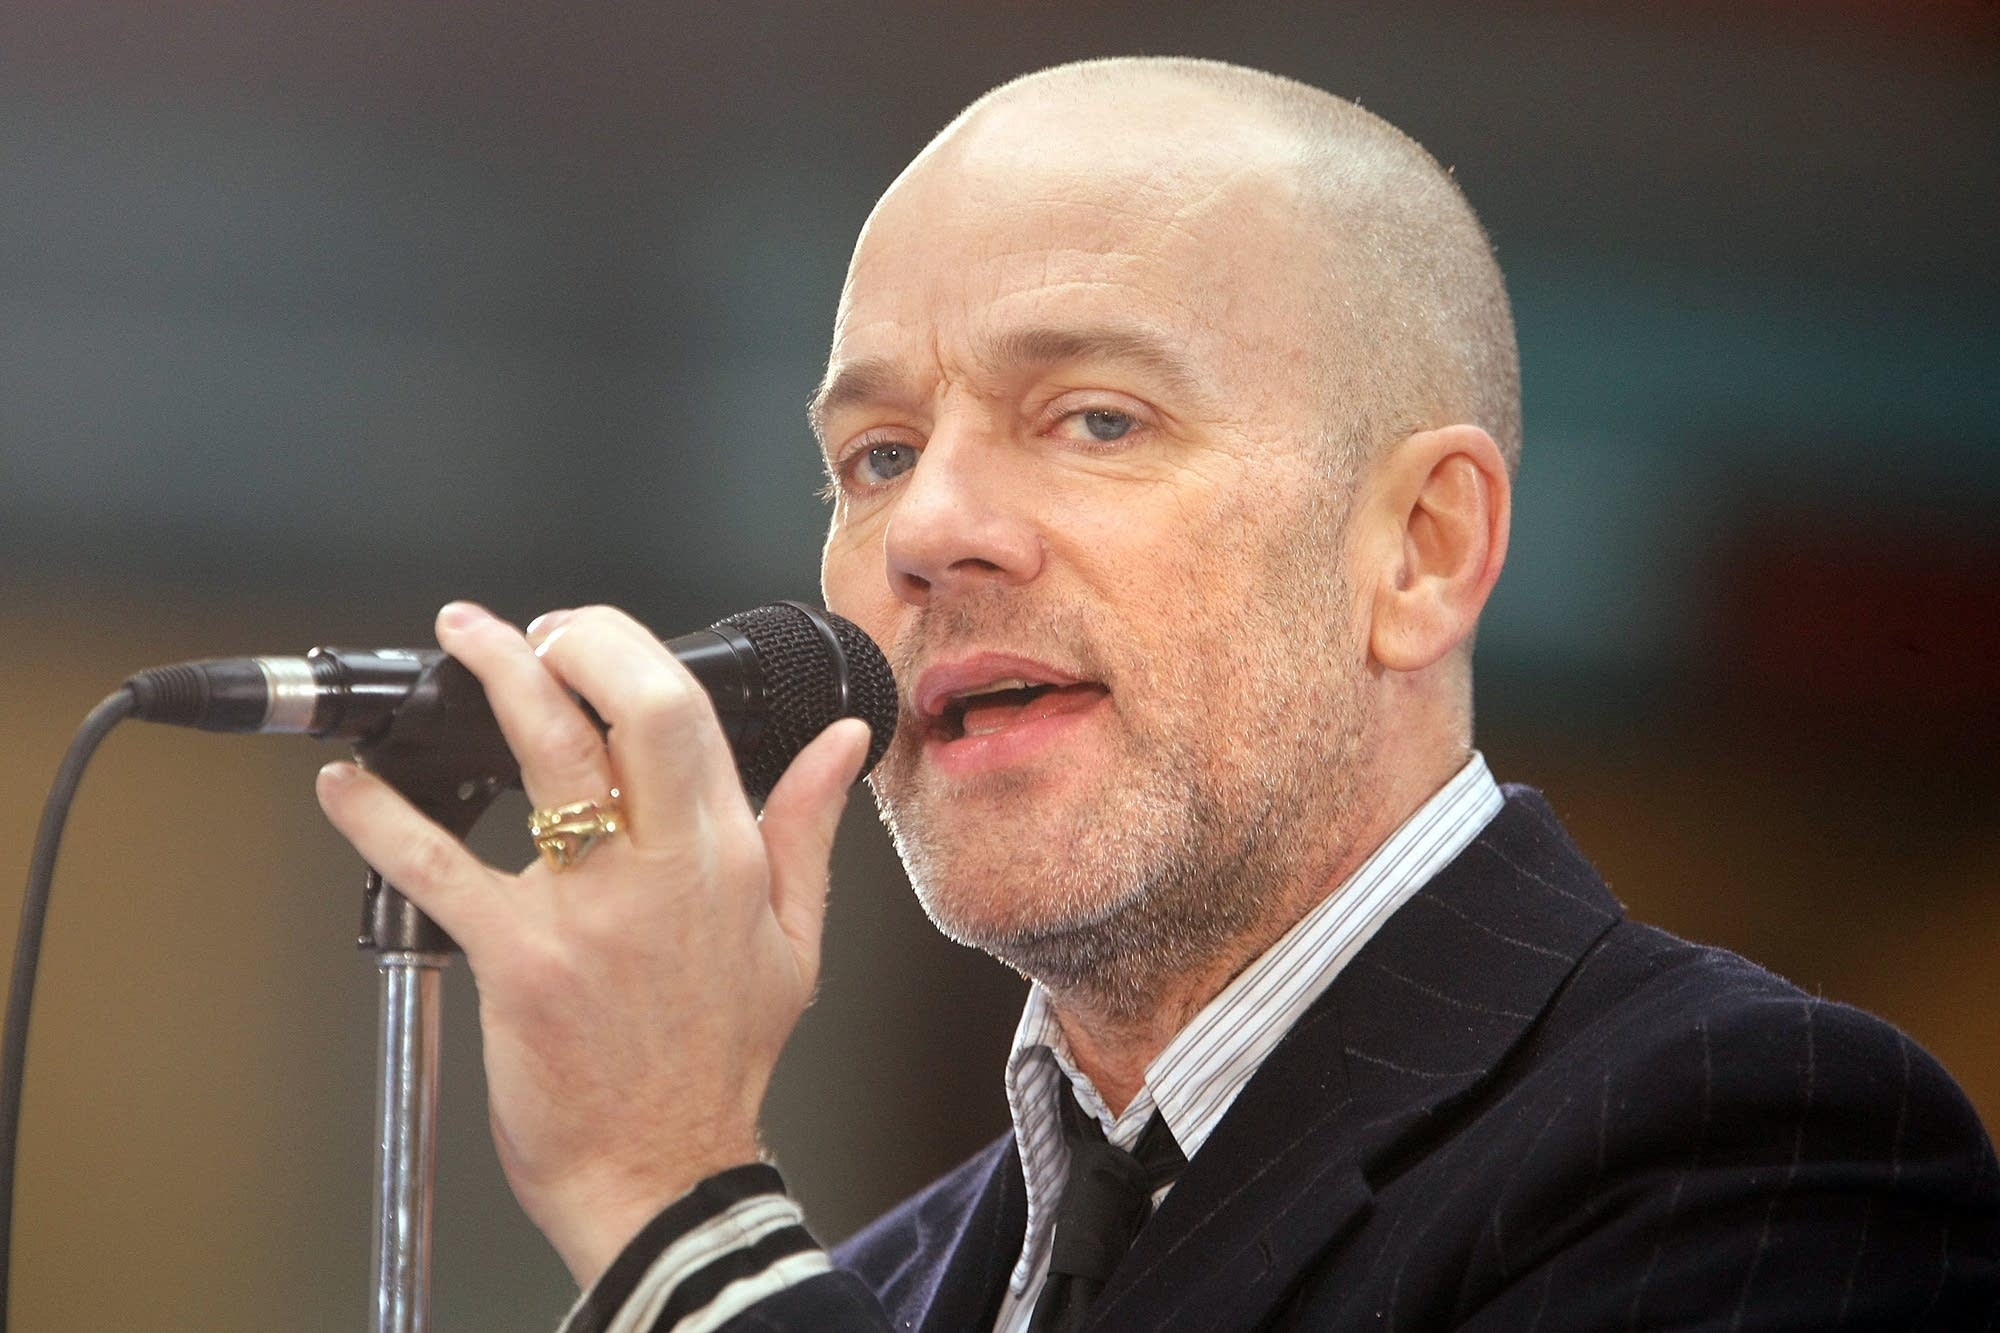 Singer Michael Stipe of R.E.M. performs on the NBC 'Today' show